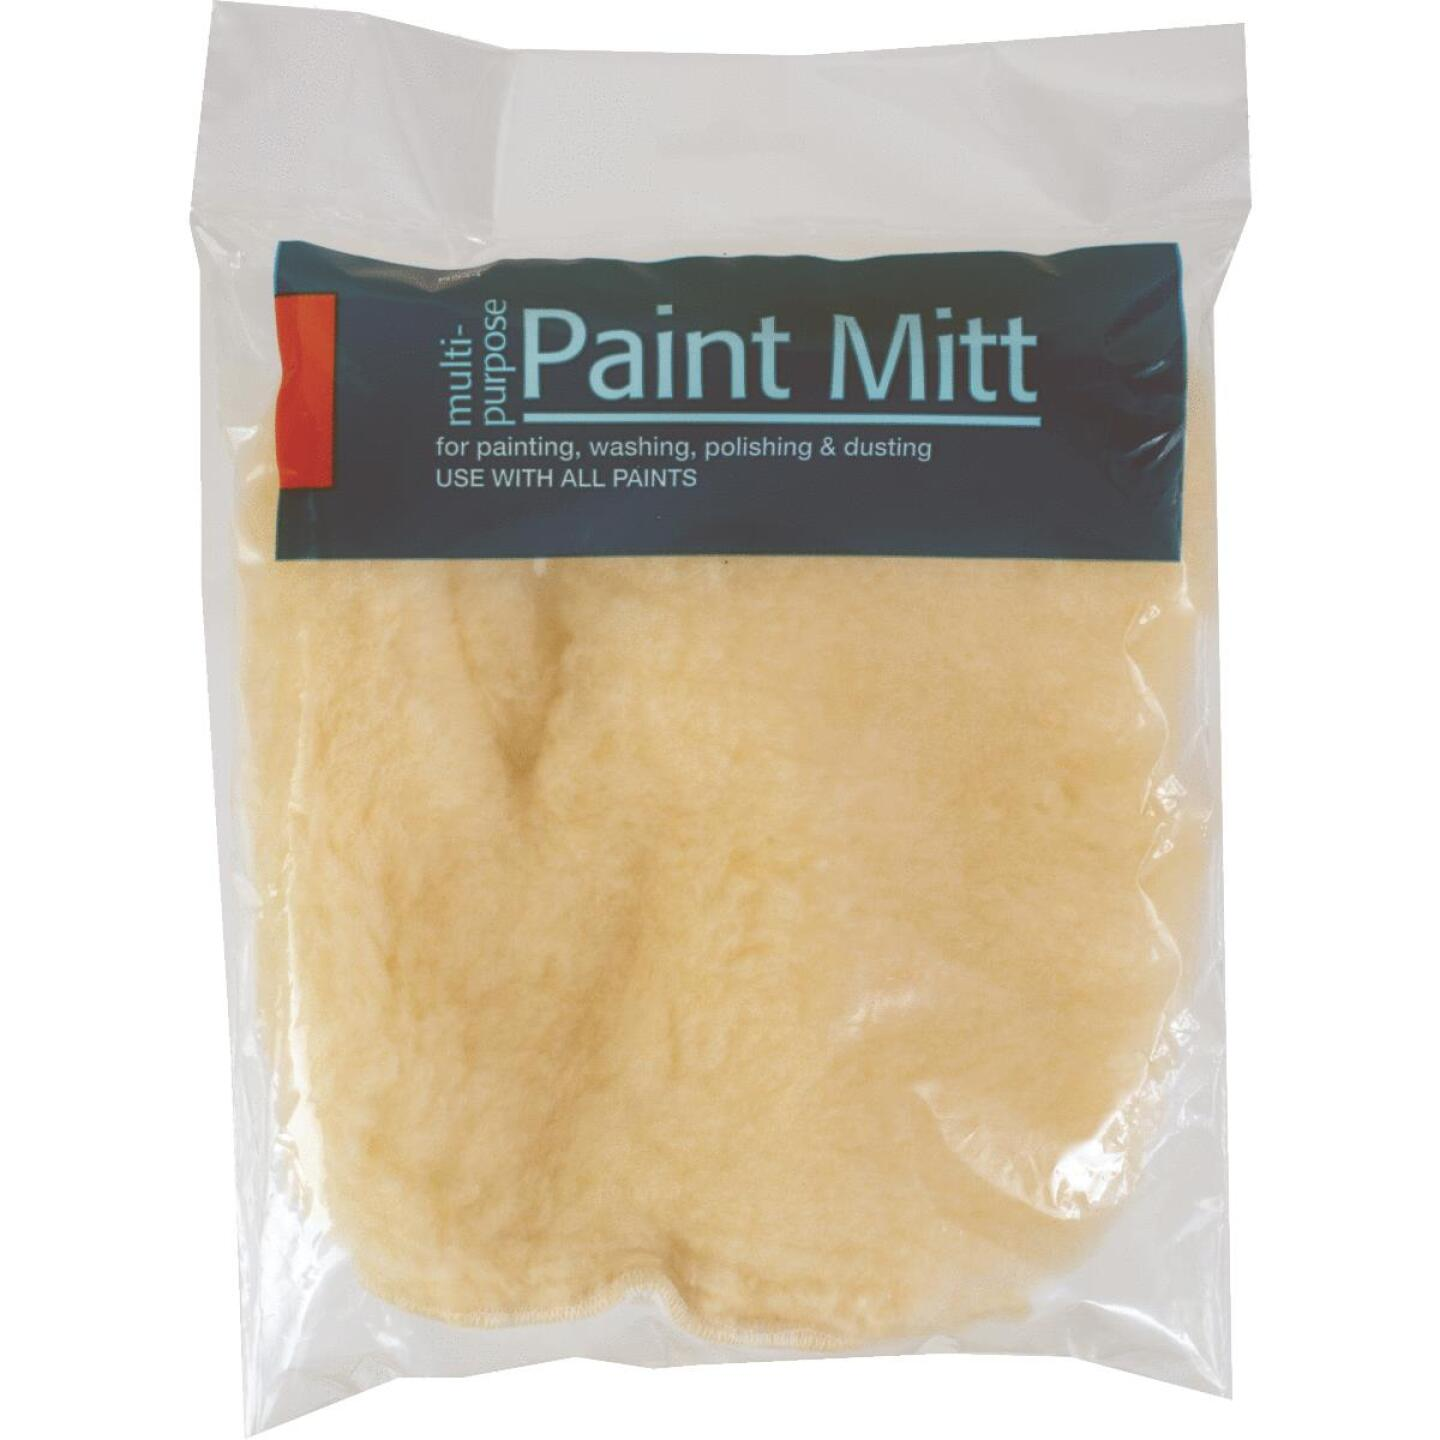 Wooster Synthetic Painter's Mitt Image 1